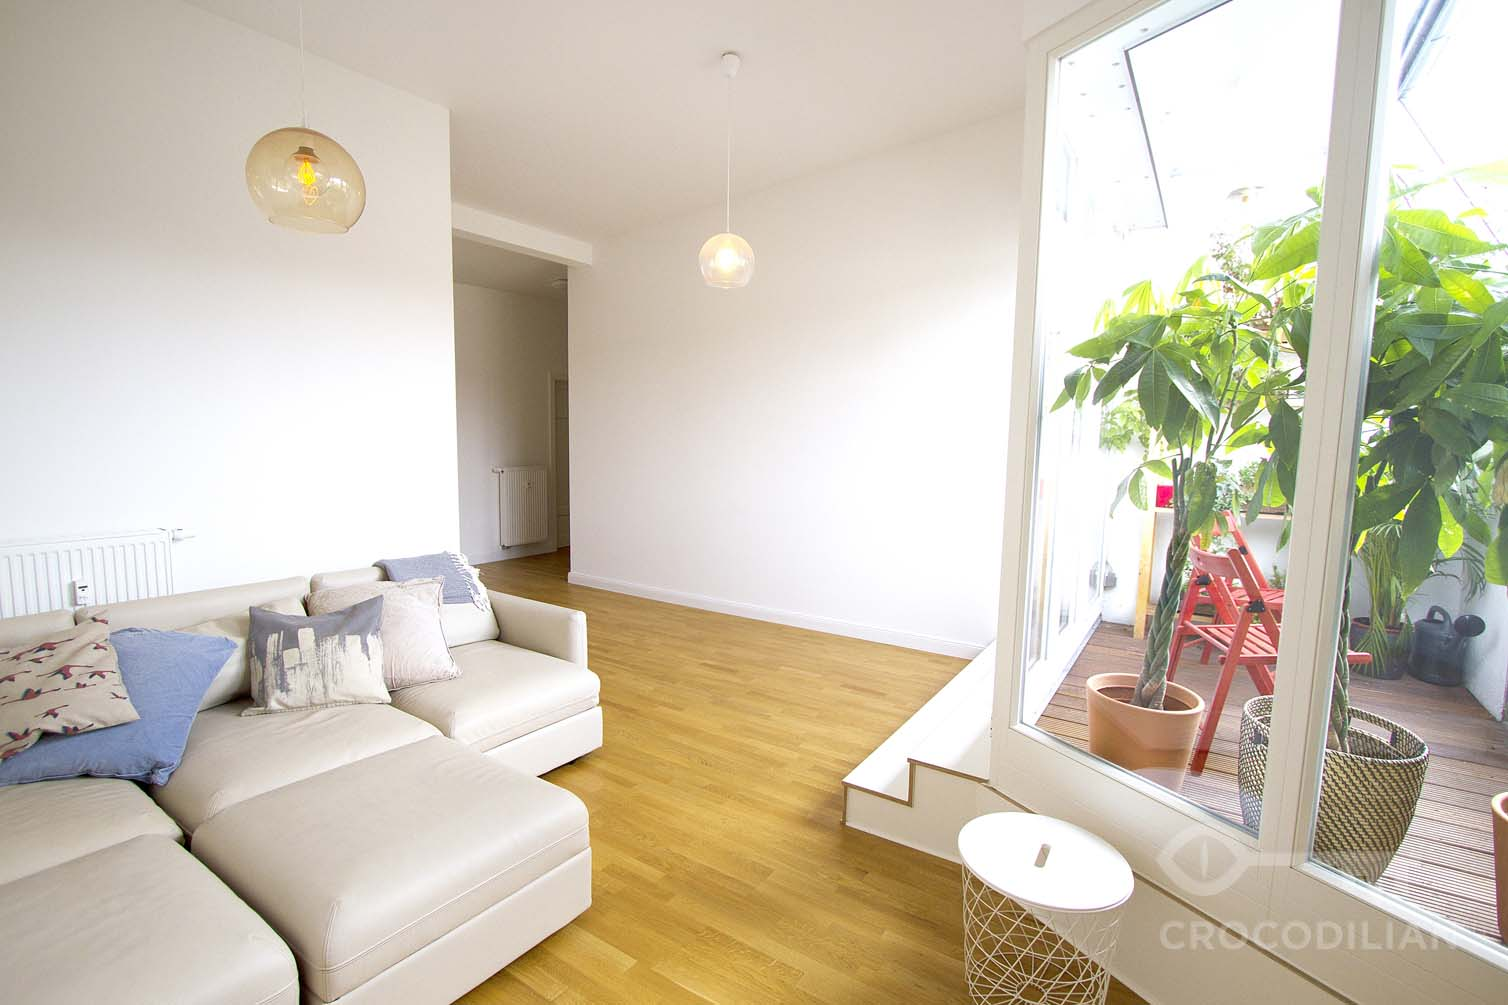 Minimalistic 3-Room-Apartment with 2 Bedrooms and stunning roof terrace in Rostocker Str.